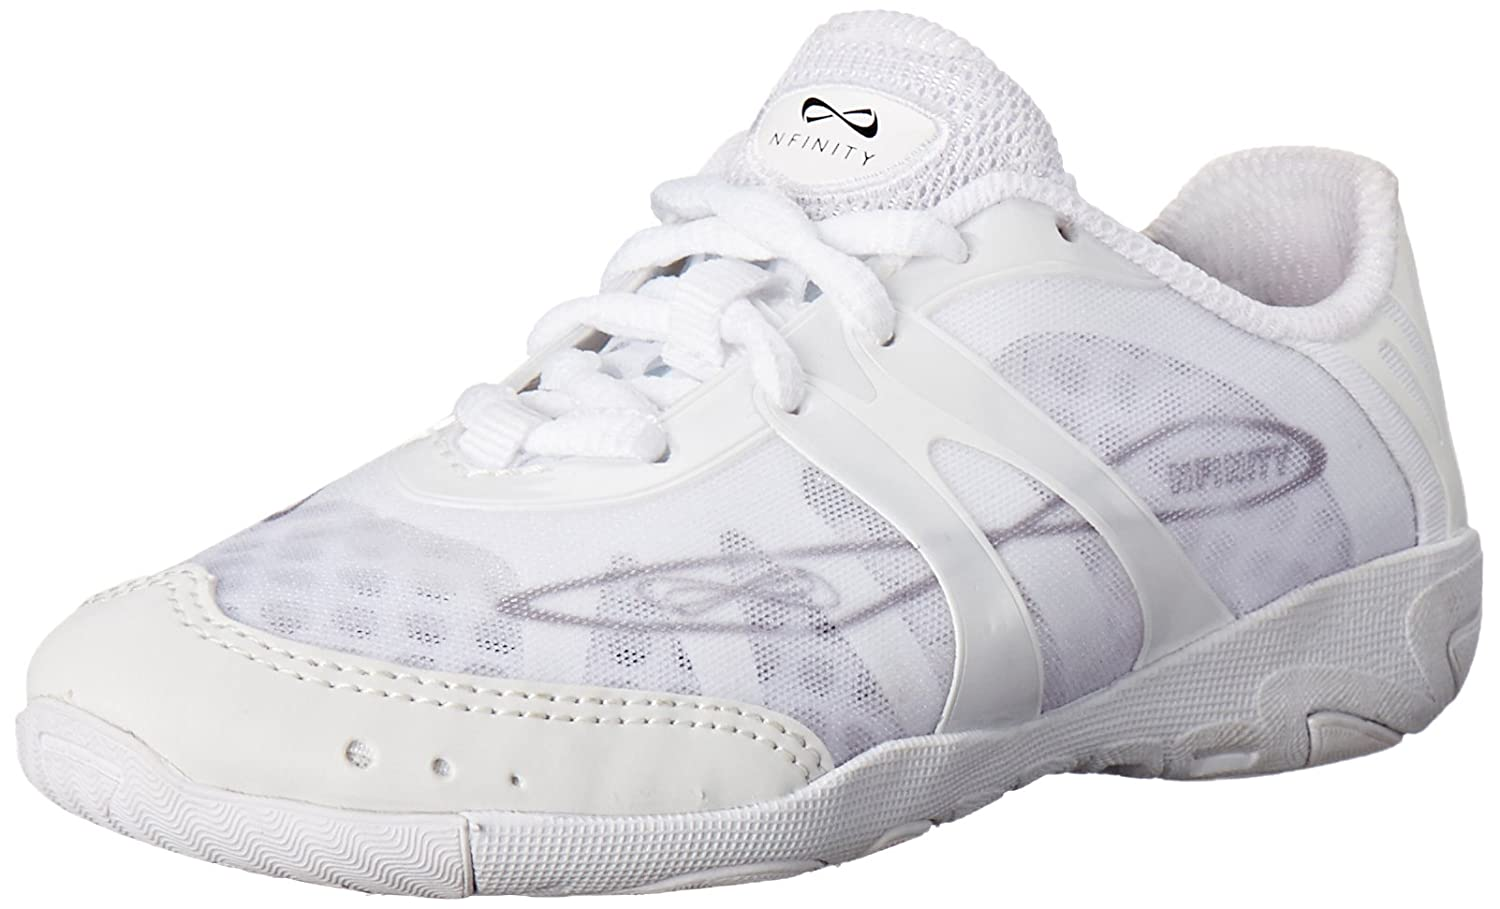 Nfinity Vengeance Cheer Shoe Pair White